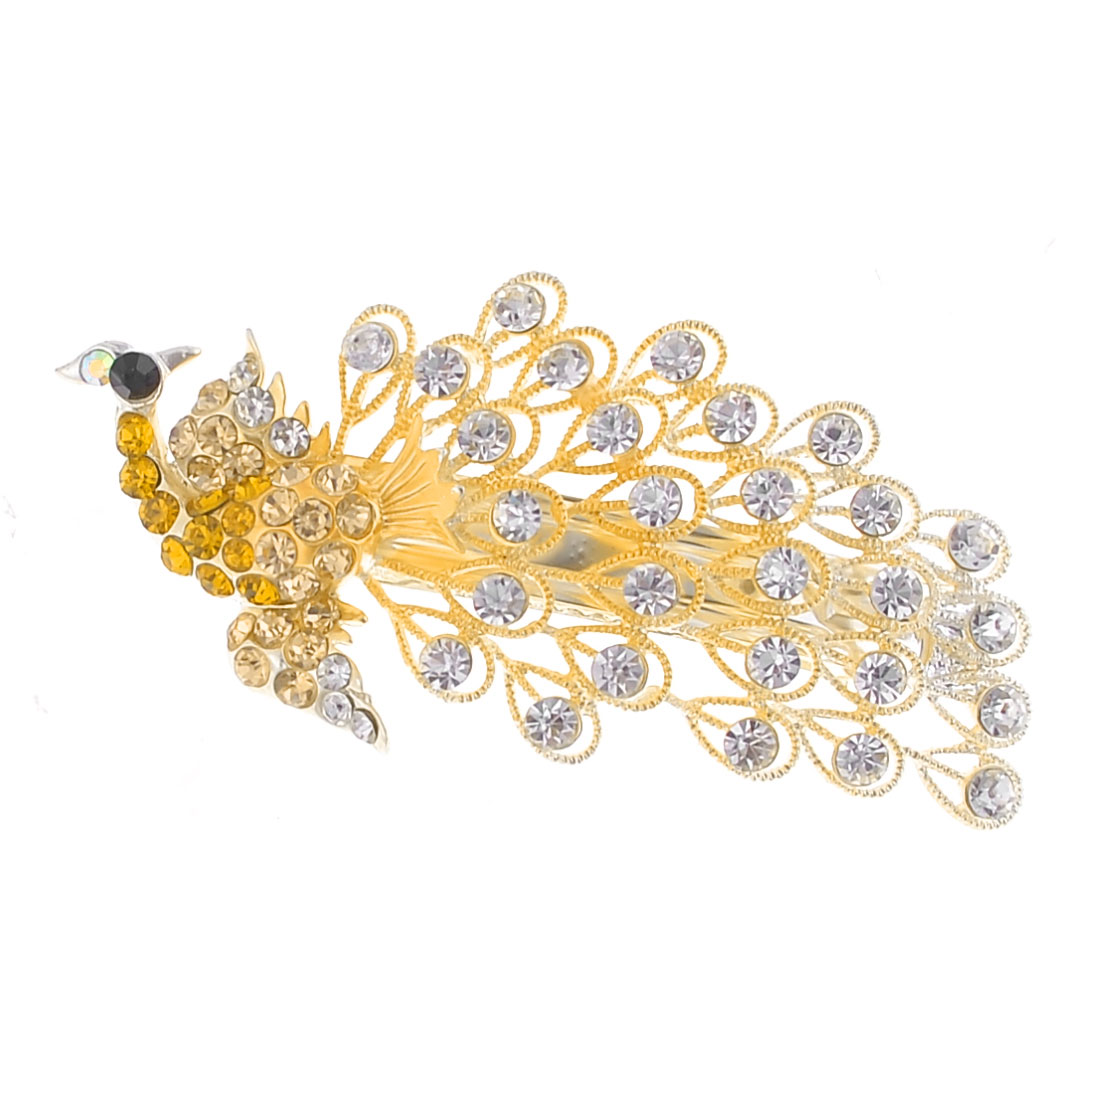 Faux Crystal Accent Champagne Faceted Crystal Decor Peacock Hair Barrette